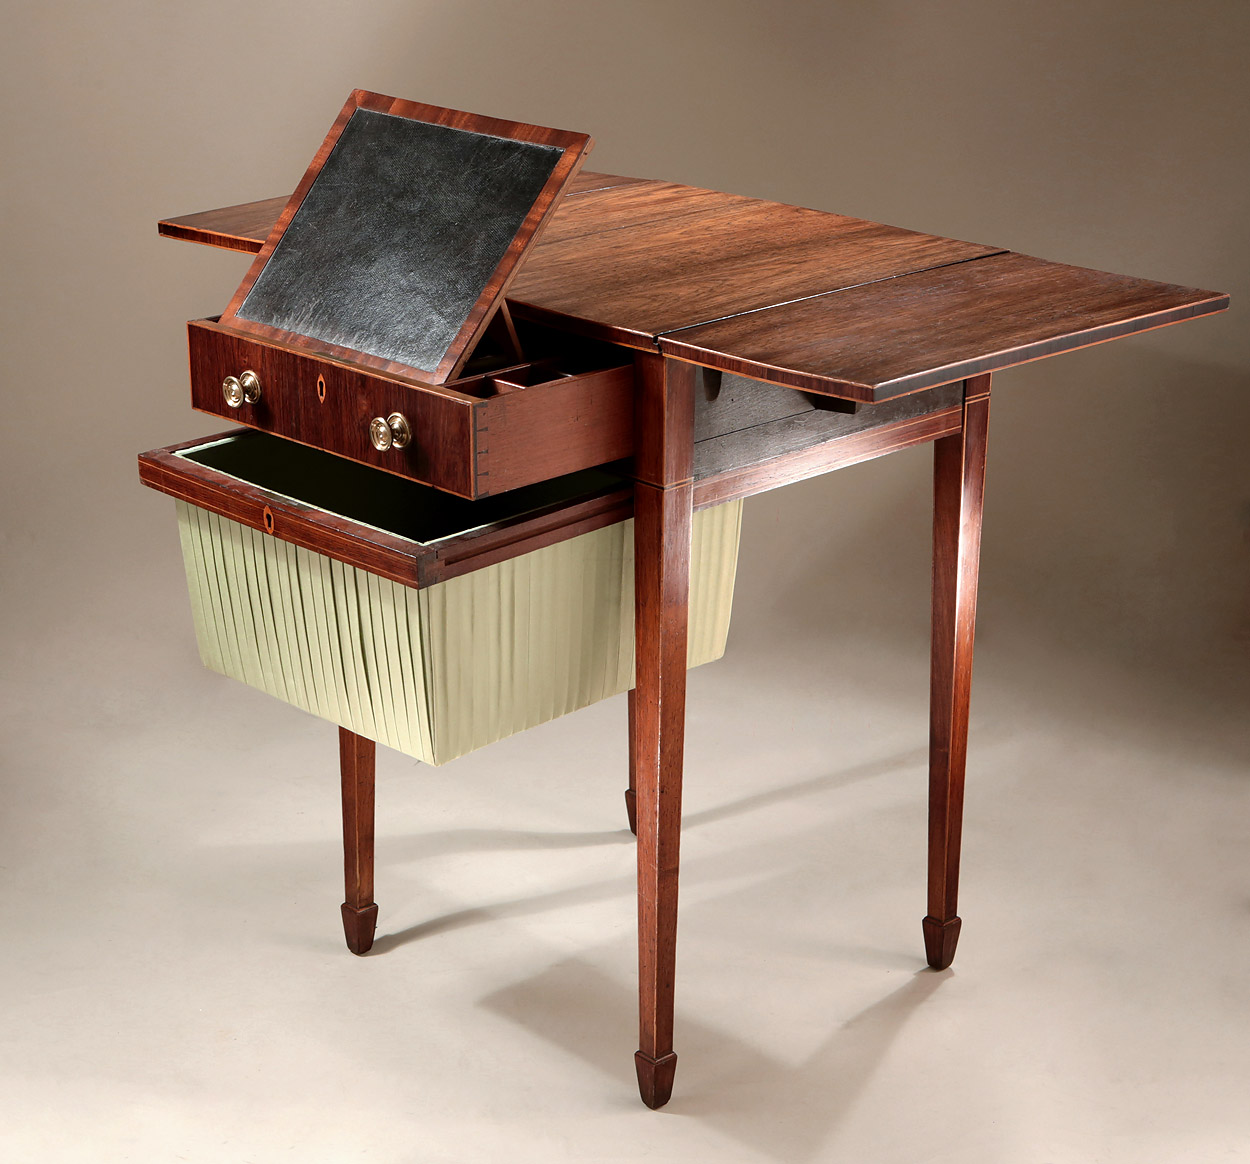 Fine George III Inlaid Rosewood Work Table with Writing Slope, England c1795